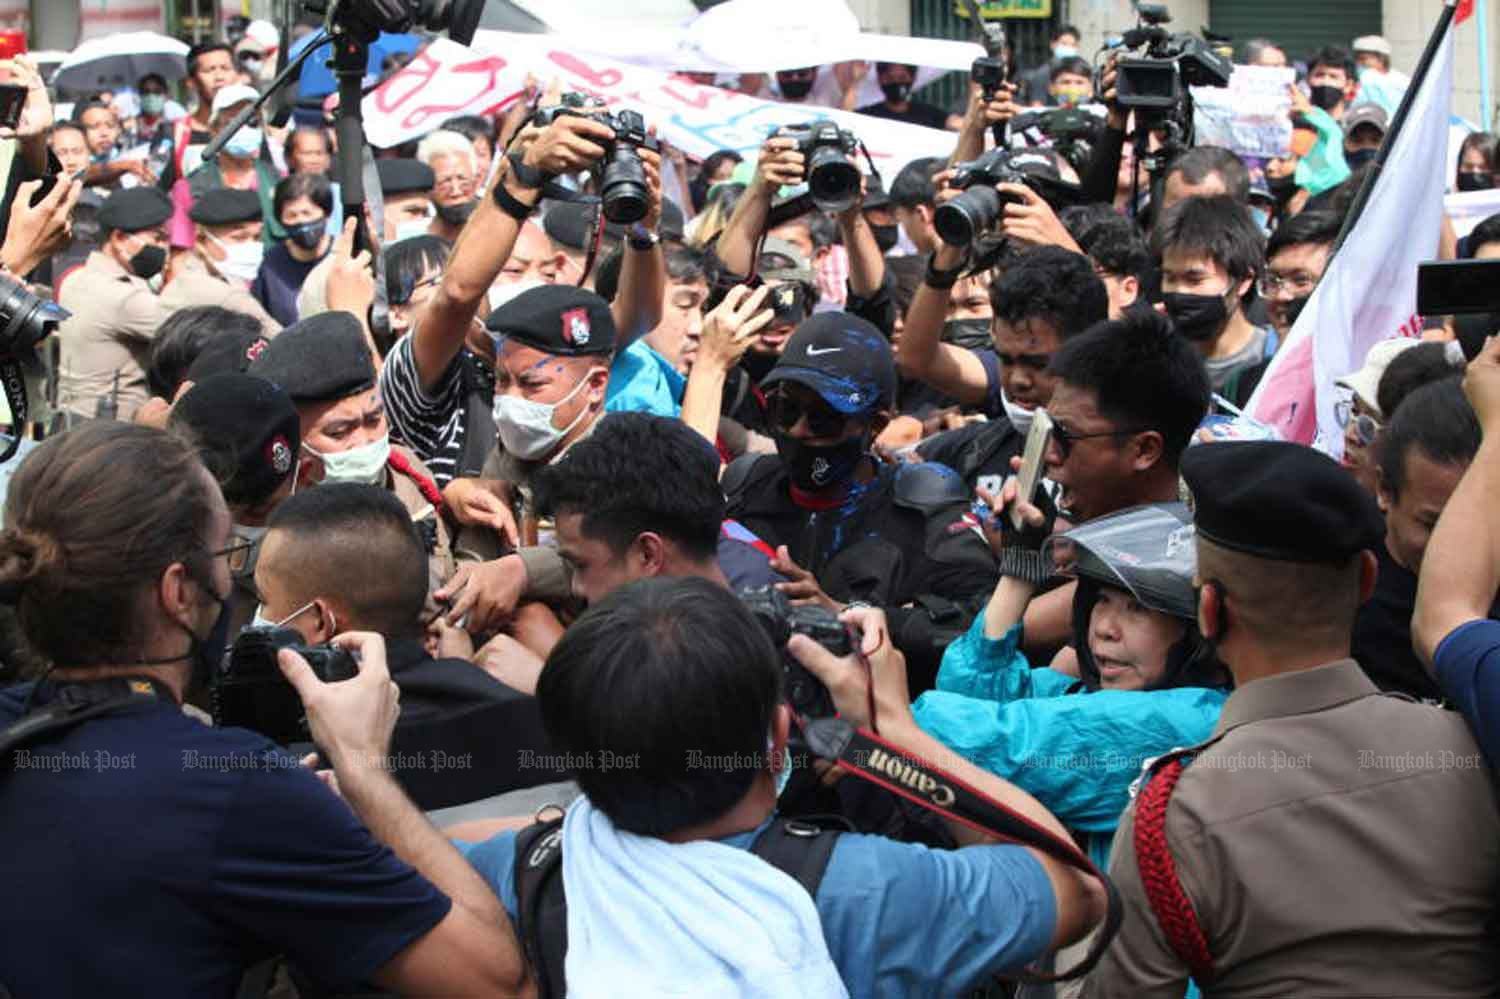 Anti-government protesters scuffle with police as they try to break barriers and storm inside Samran Rat police station in Bangkok where 15 political activists arrived on Aug 28 to acknowledge charges against them in connection with a rally on July 18. Blue paint in bags and a bucket was thrown at the officers during the ruckus. (Photo by Apichart Jinakul)